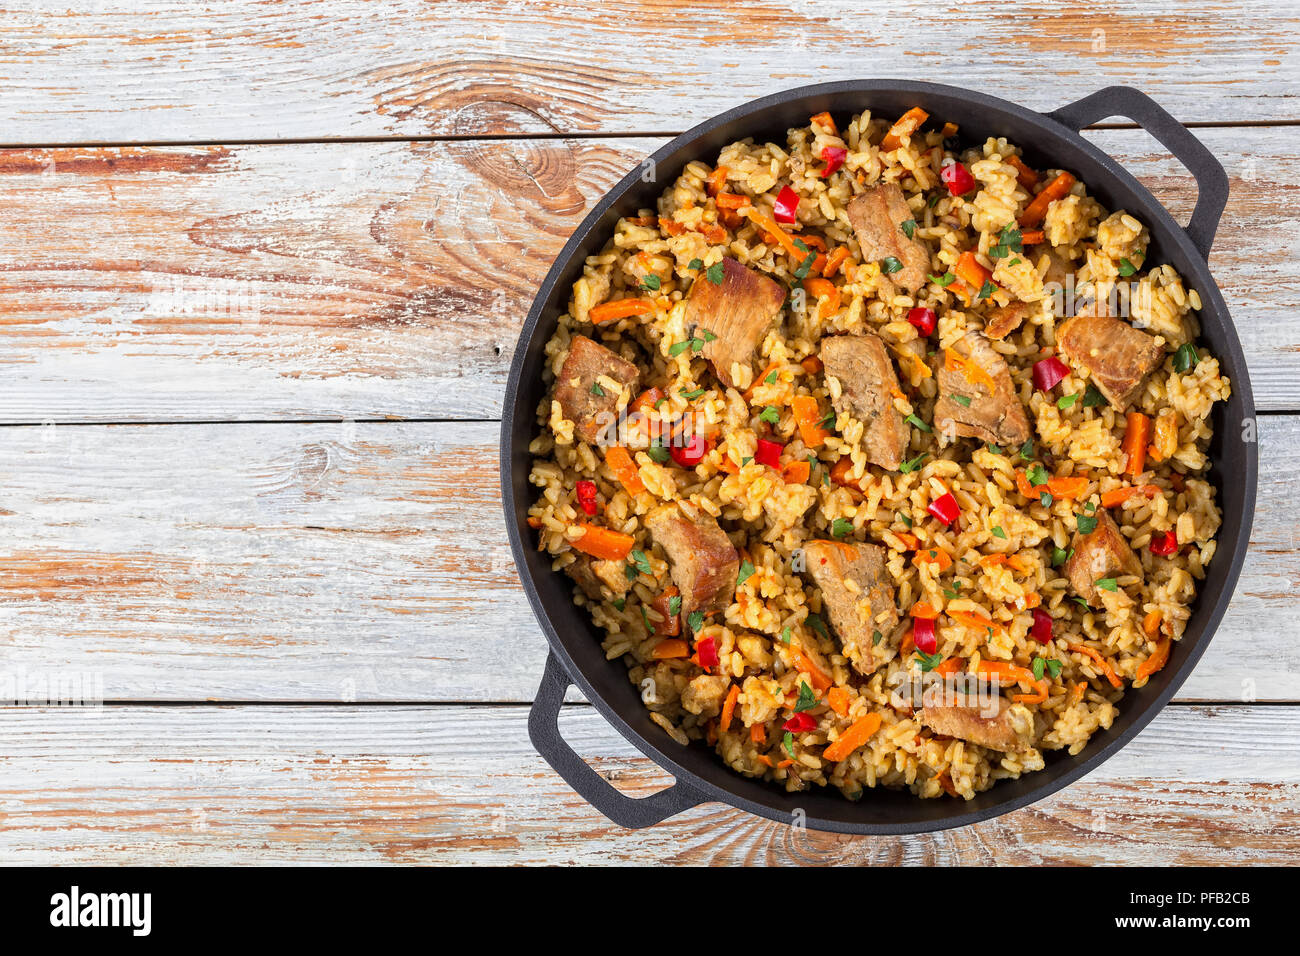 Homemade prepared paella with meat, pepper, vegetables and spices in iron pan on white peeling paint wooden planks, view from above - Stock Image